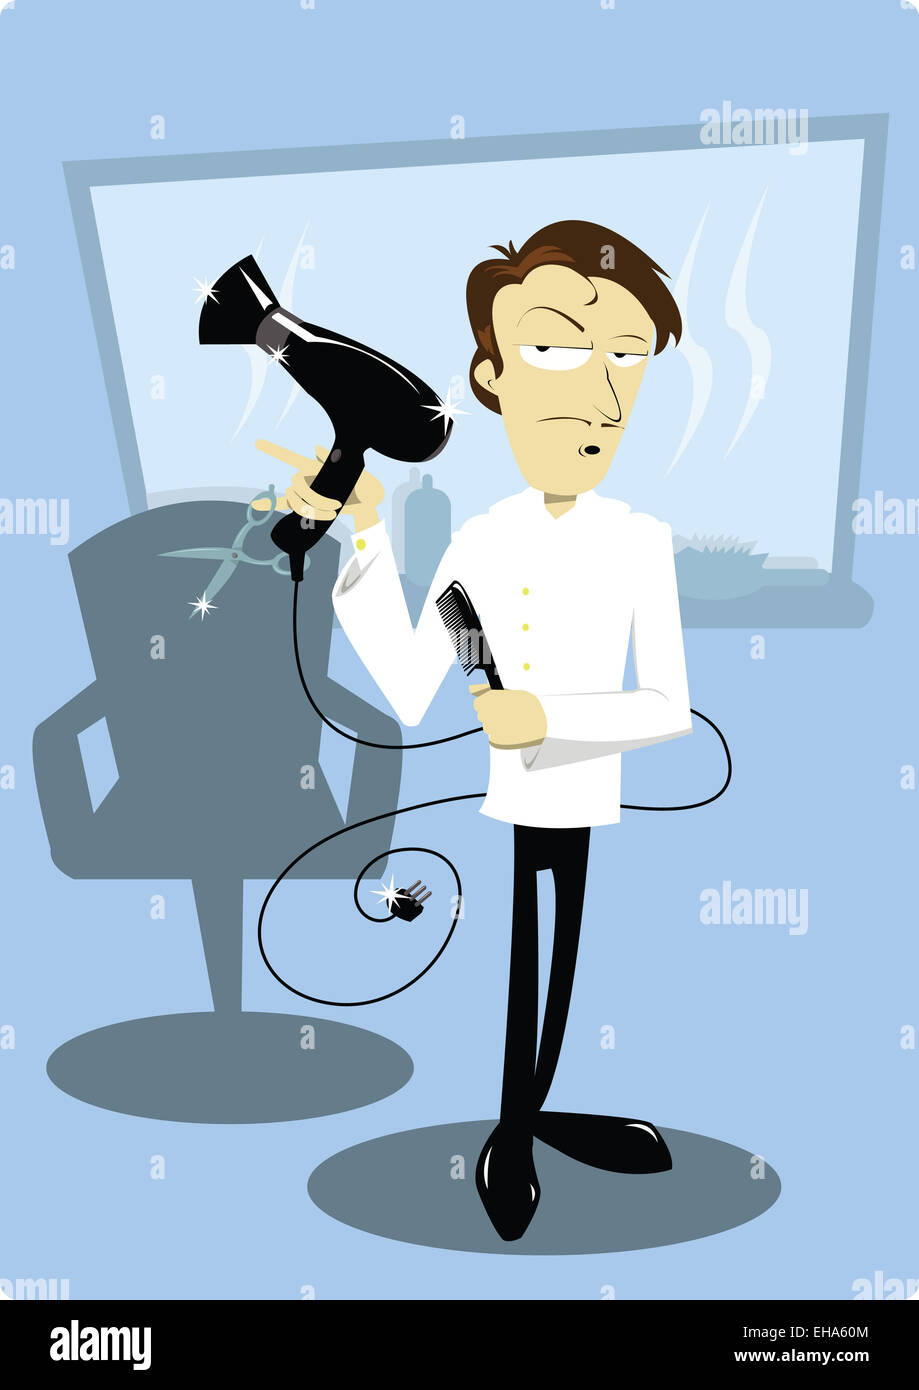 A Vector Cartoon Showing A Funny Coiffeur In His Hair Salon Stock Photo Alamy